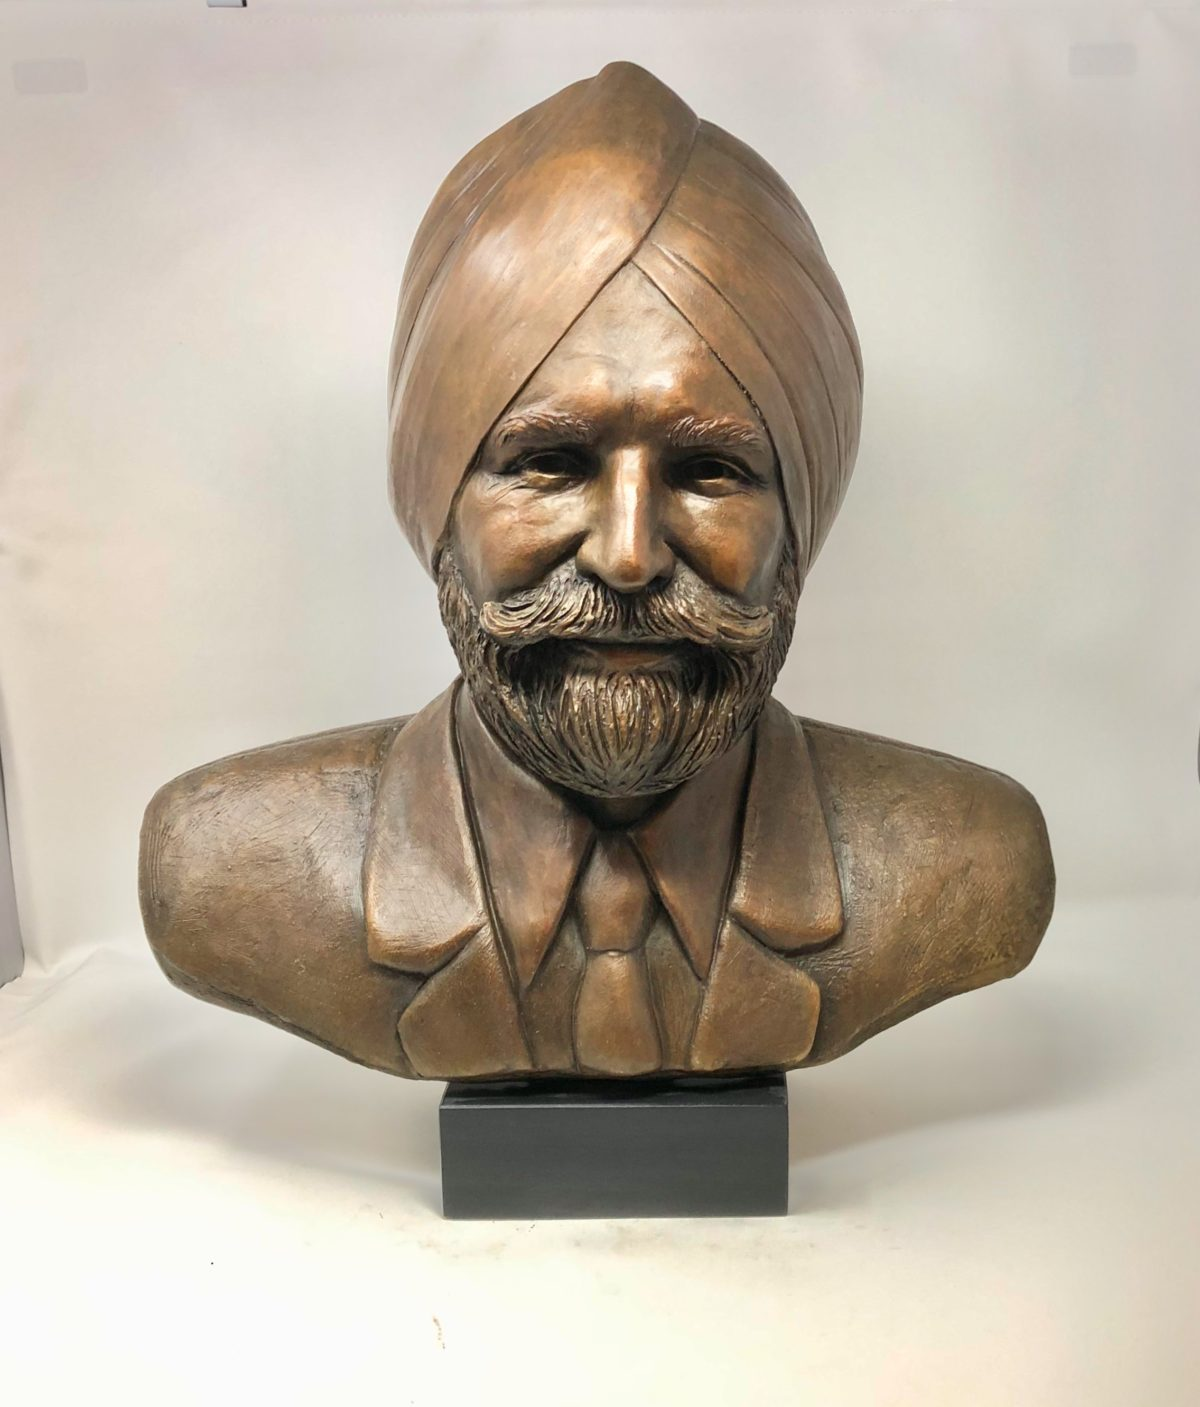 Sikh Bust Art by Laura Lian